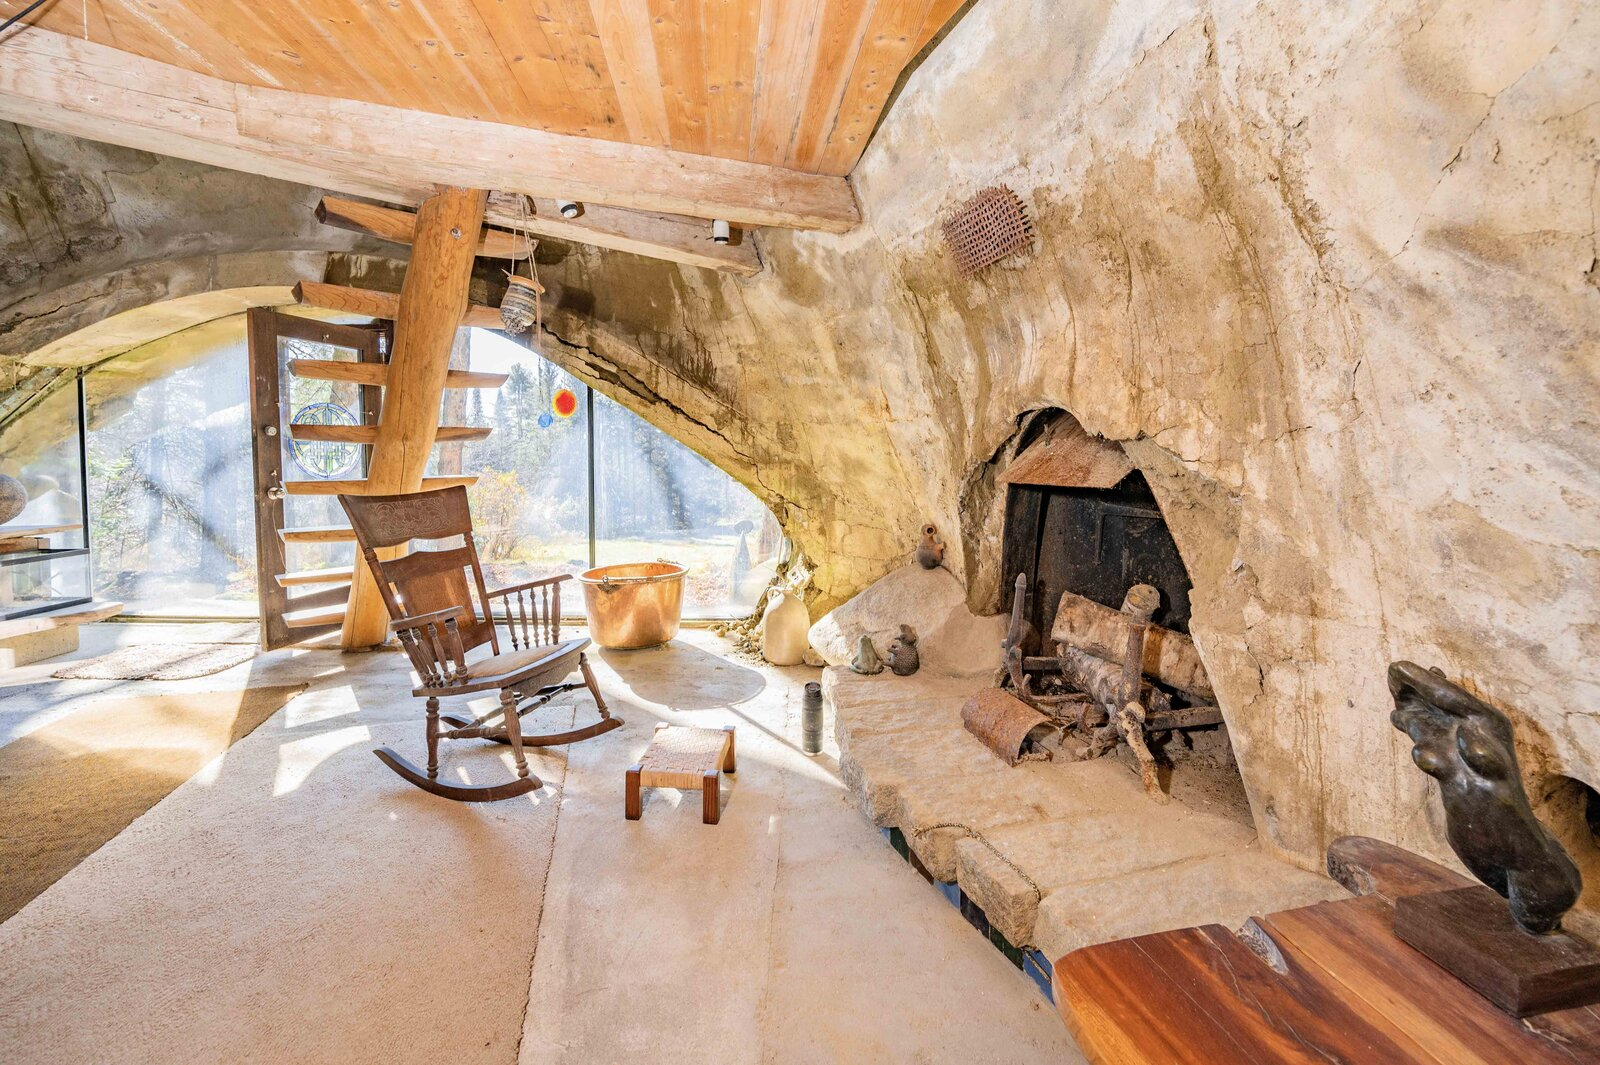 The nearly 1,500-square-foot home has been vacant since Chappelle's death over two years ago, leading to the exacerbation of leaks in some areas.  Photo 4 of 12 in Asking $220K, an Architect's Handcrafted Earthen Home Seeks a Visionary Buyer in Vermont